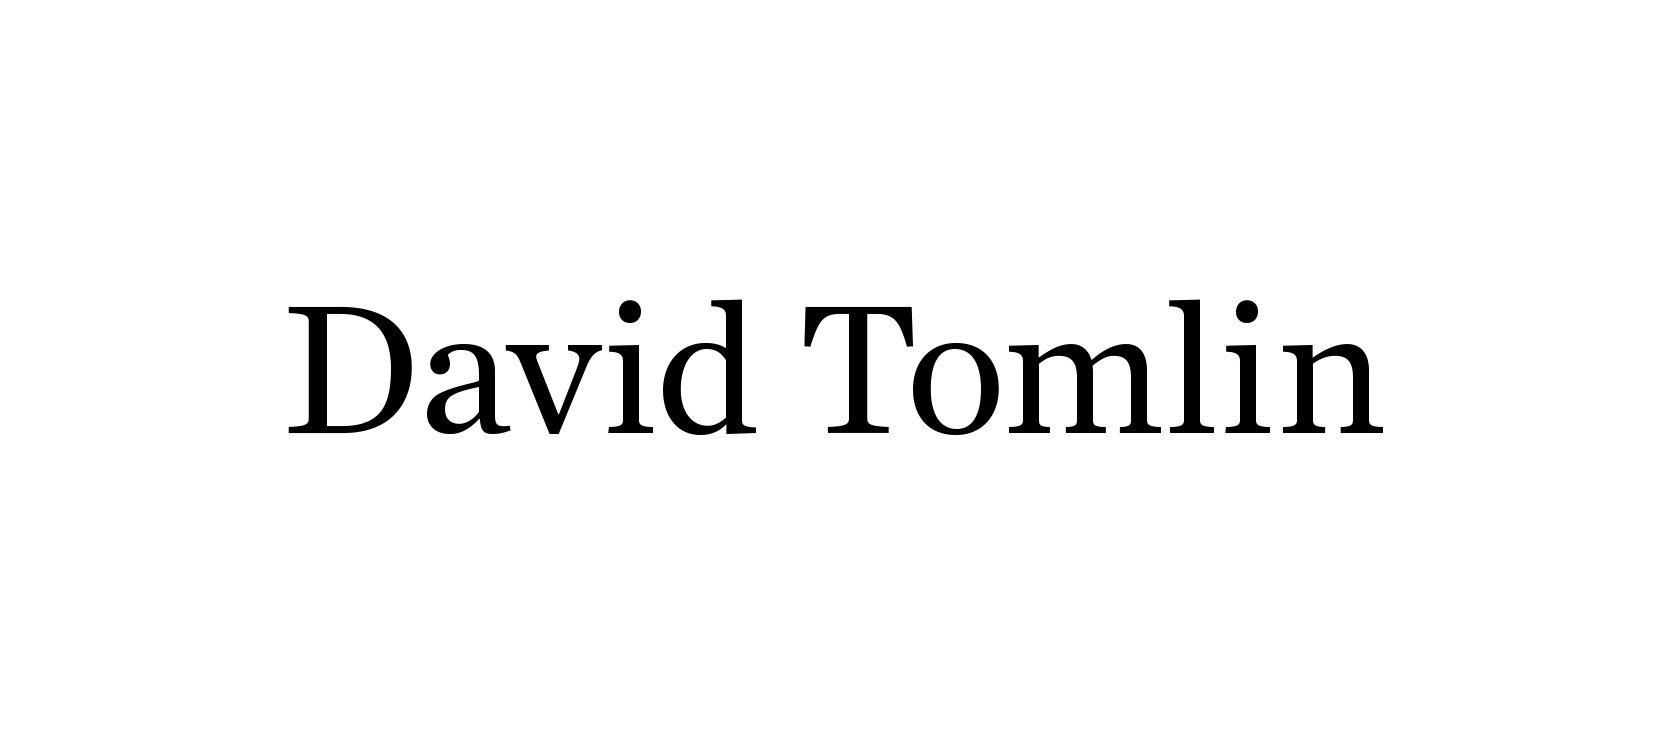 David Tomlin Logo Identity Design by Furia